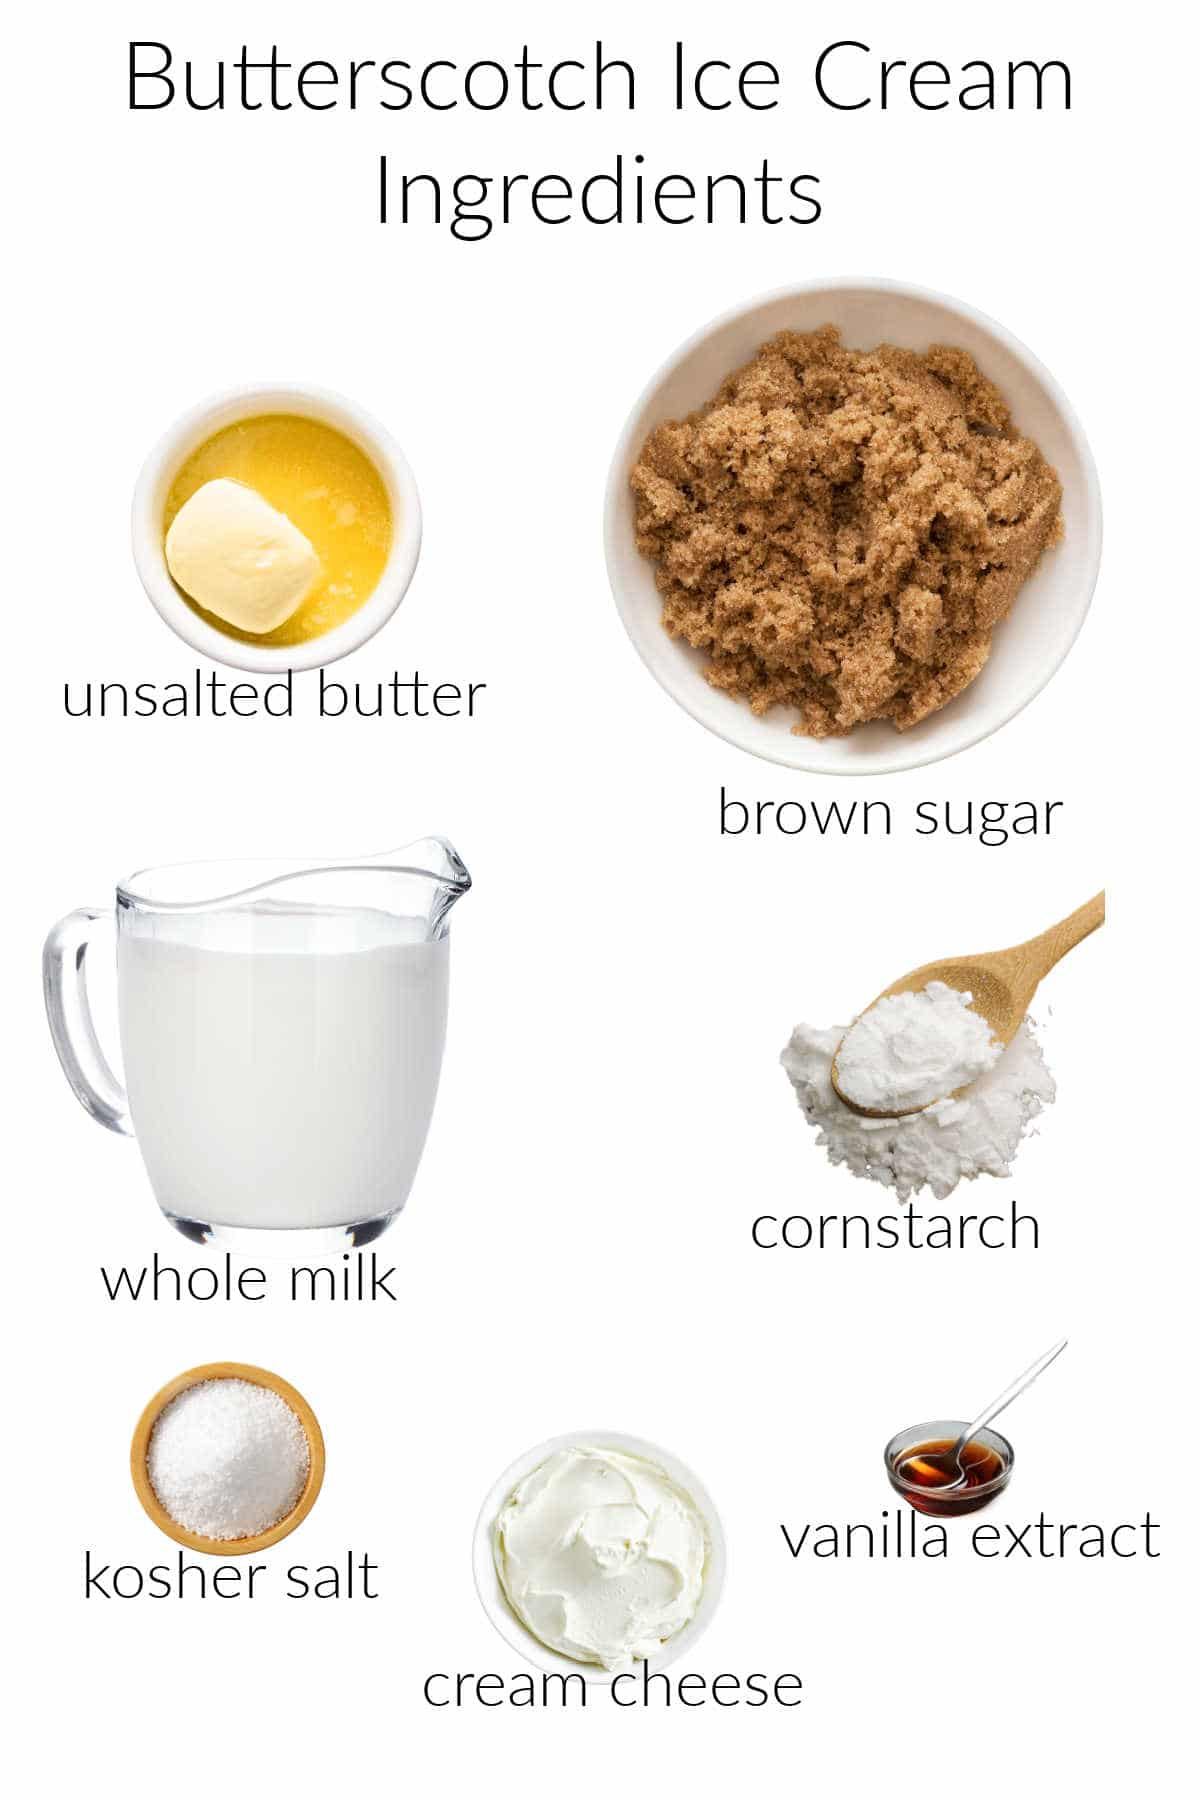 Collage of ingredients for making butterscotch ice cream.